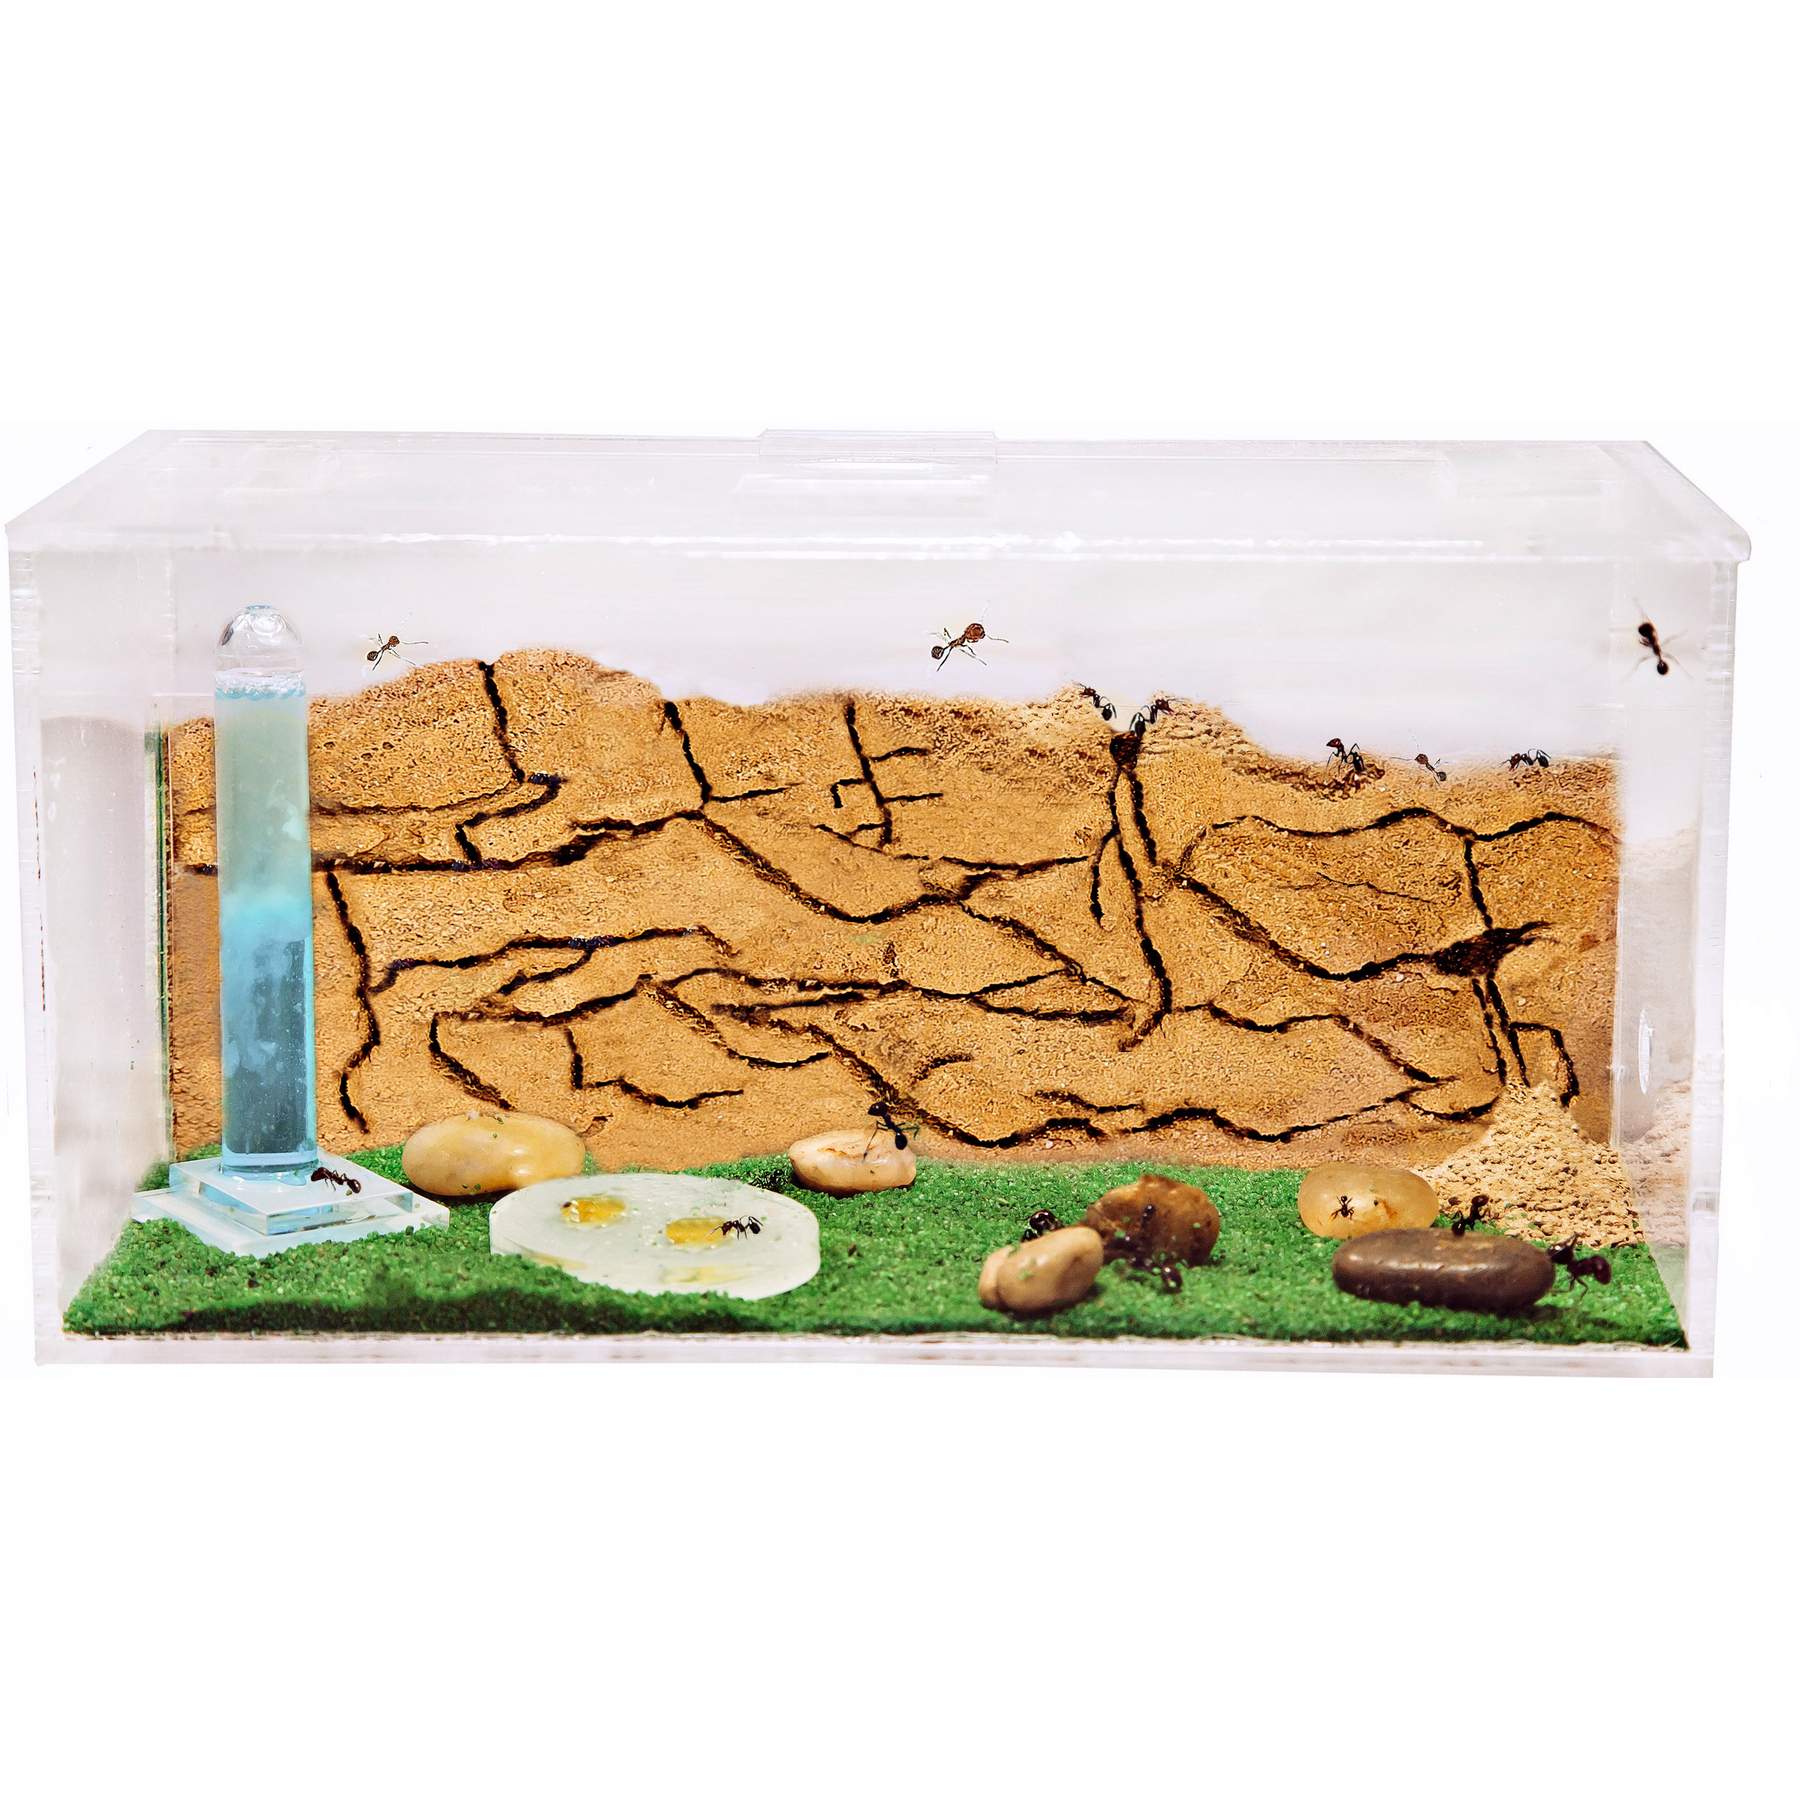 Sand Ant Farm With Free Ants And Queen - Educational Formicarium For LIVE Ants